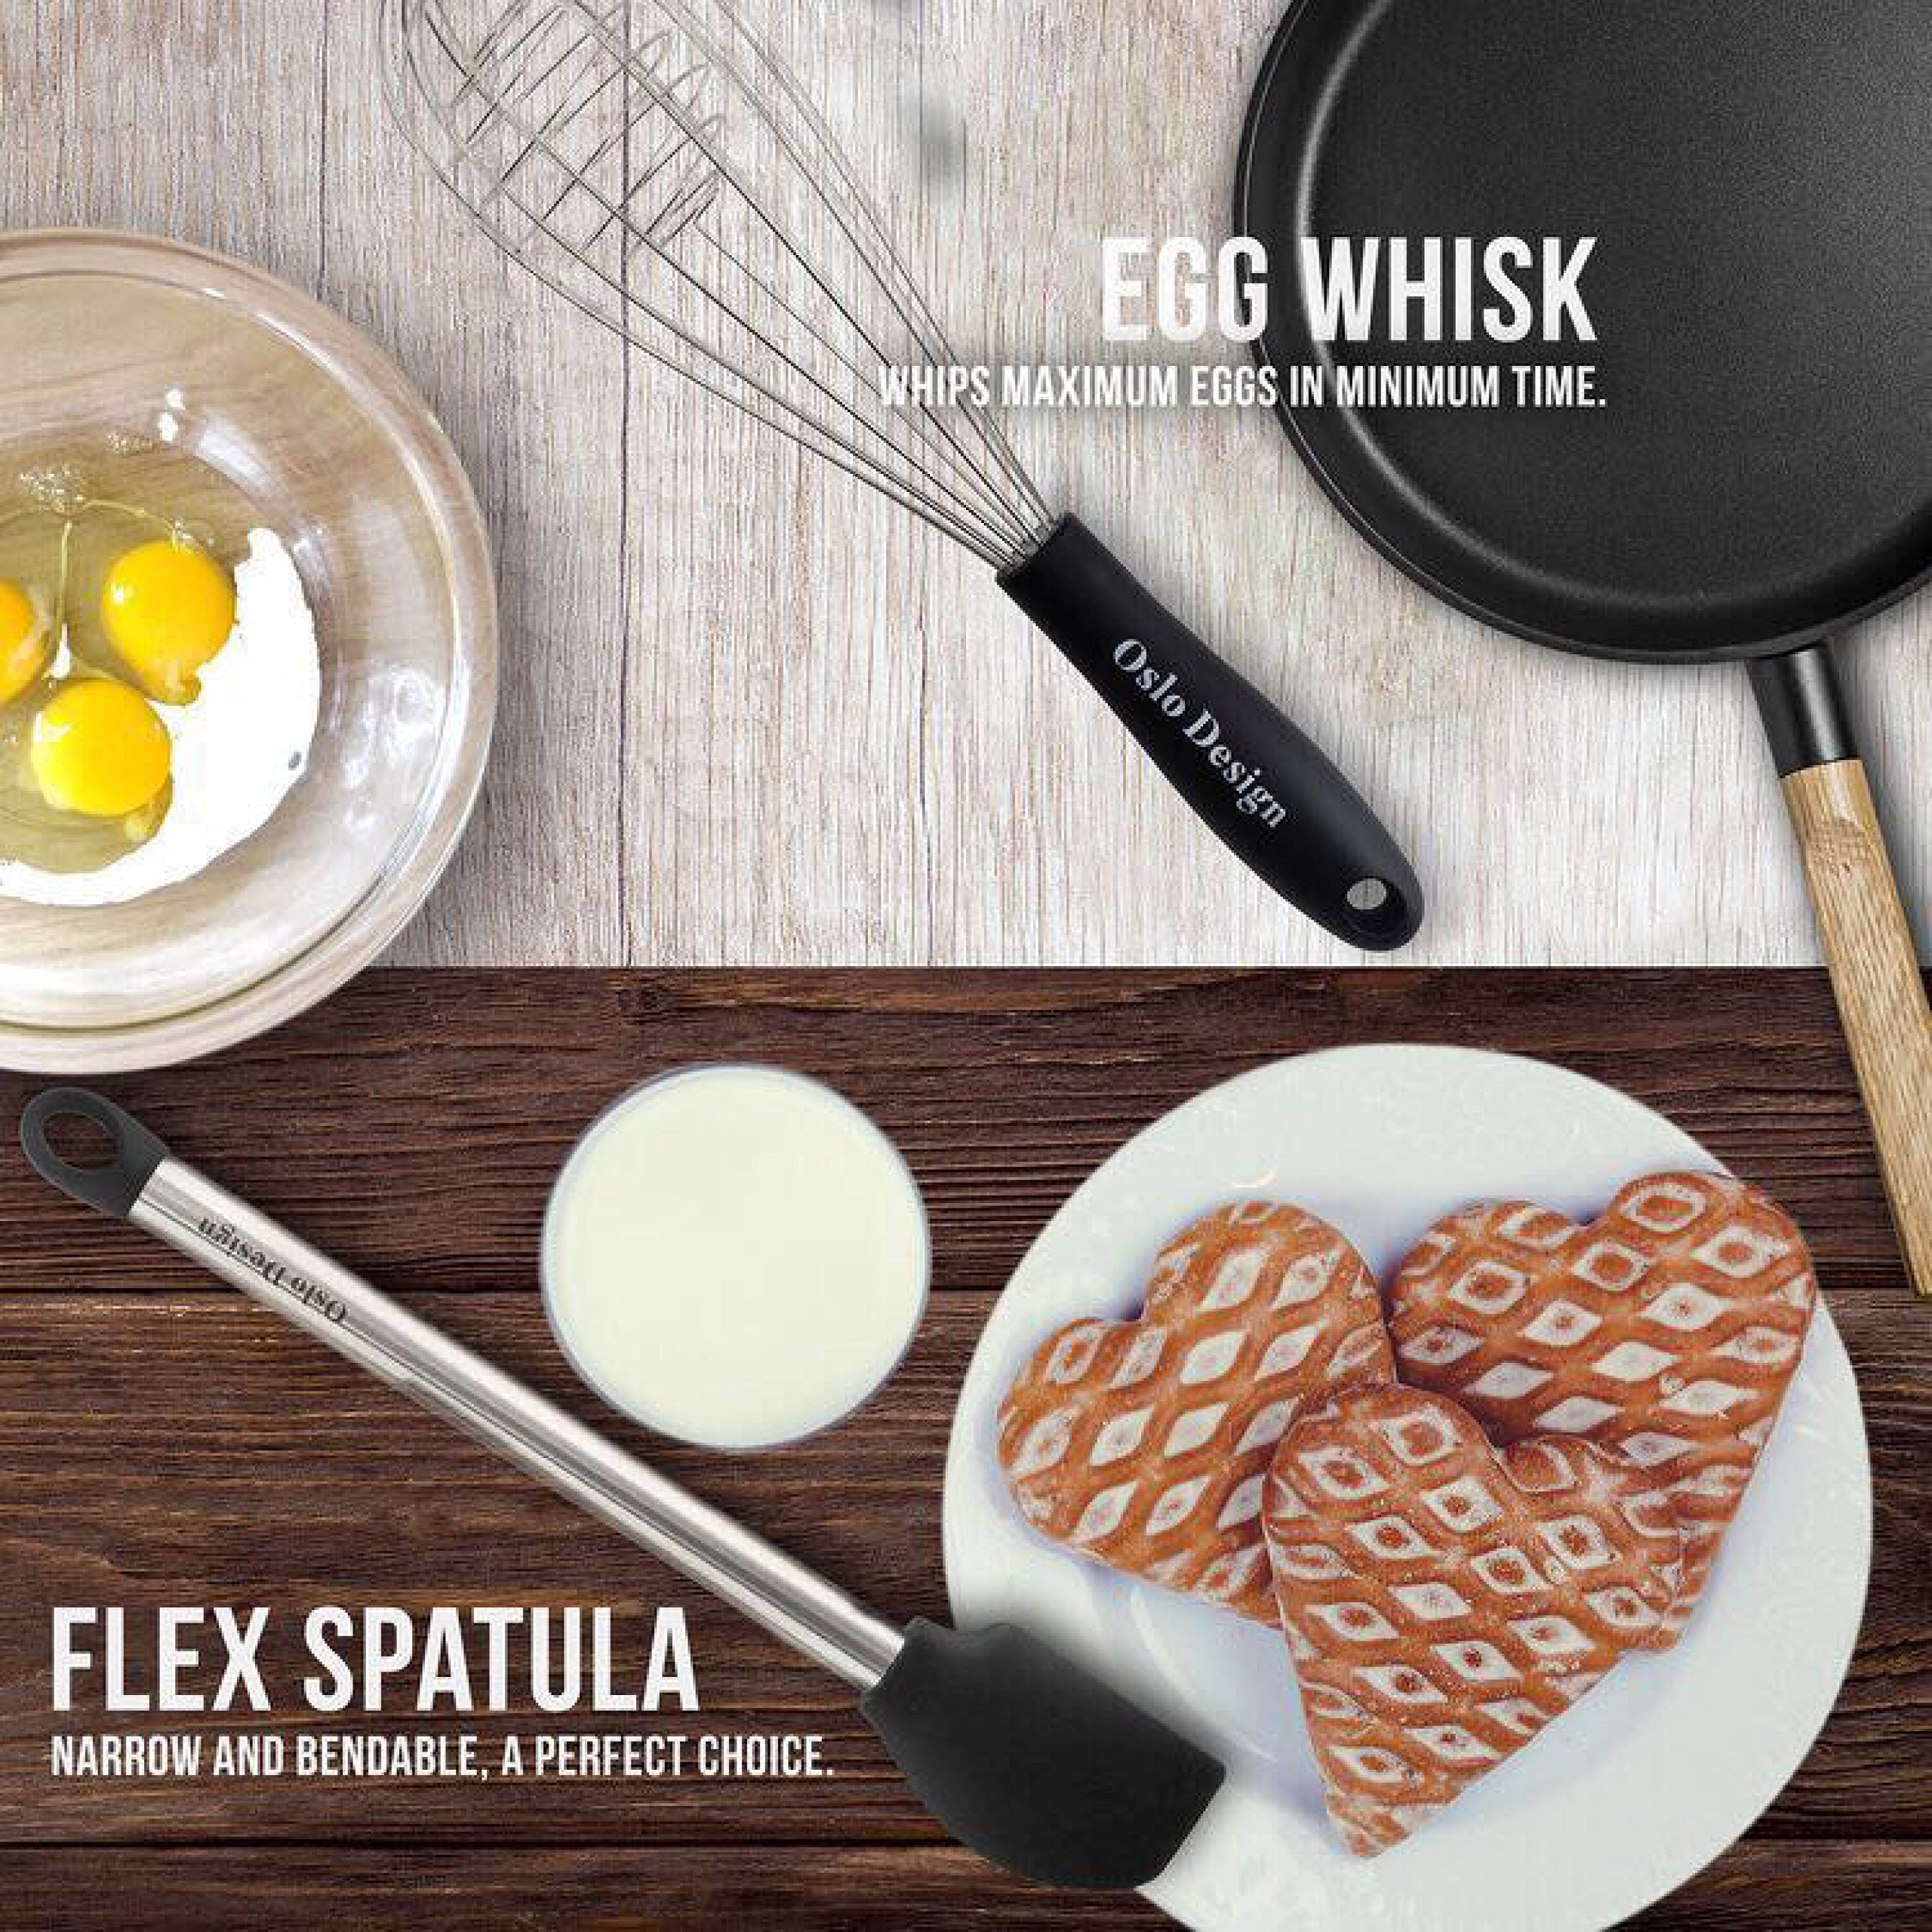 Kitchen Utensil set - 8 Piece Cooking Utensils for nonstick cookware -Made Of Silicone and Stainless Steel -Includes Spoon, Egg Whisk, Serving Tong, Spatula Tools, Pasta Server, Ladle, Strainer by Oslo Design (Image #3)